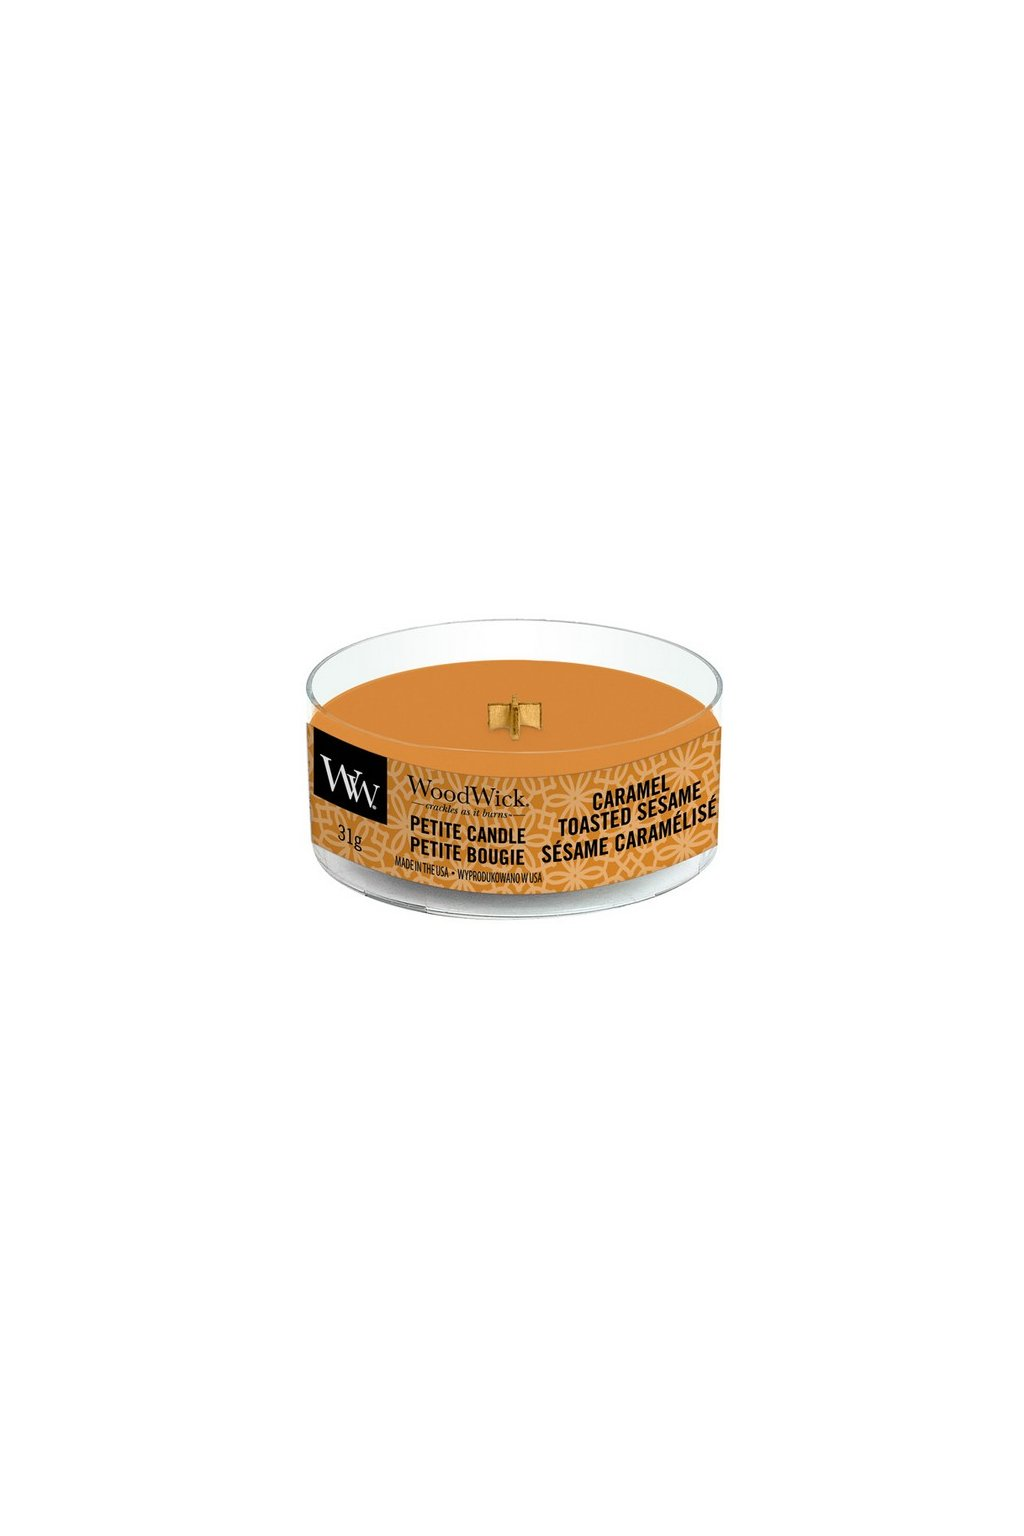 WoodWick Caramel Tosted Sesame petite